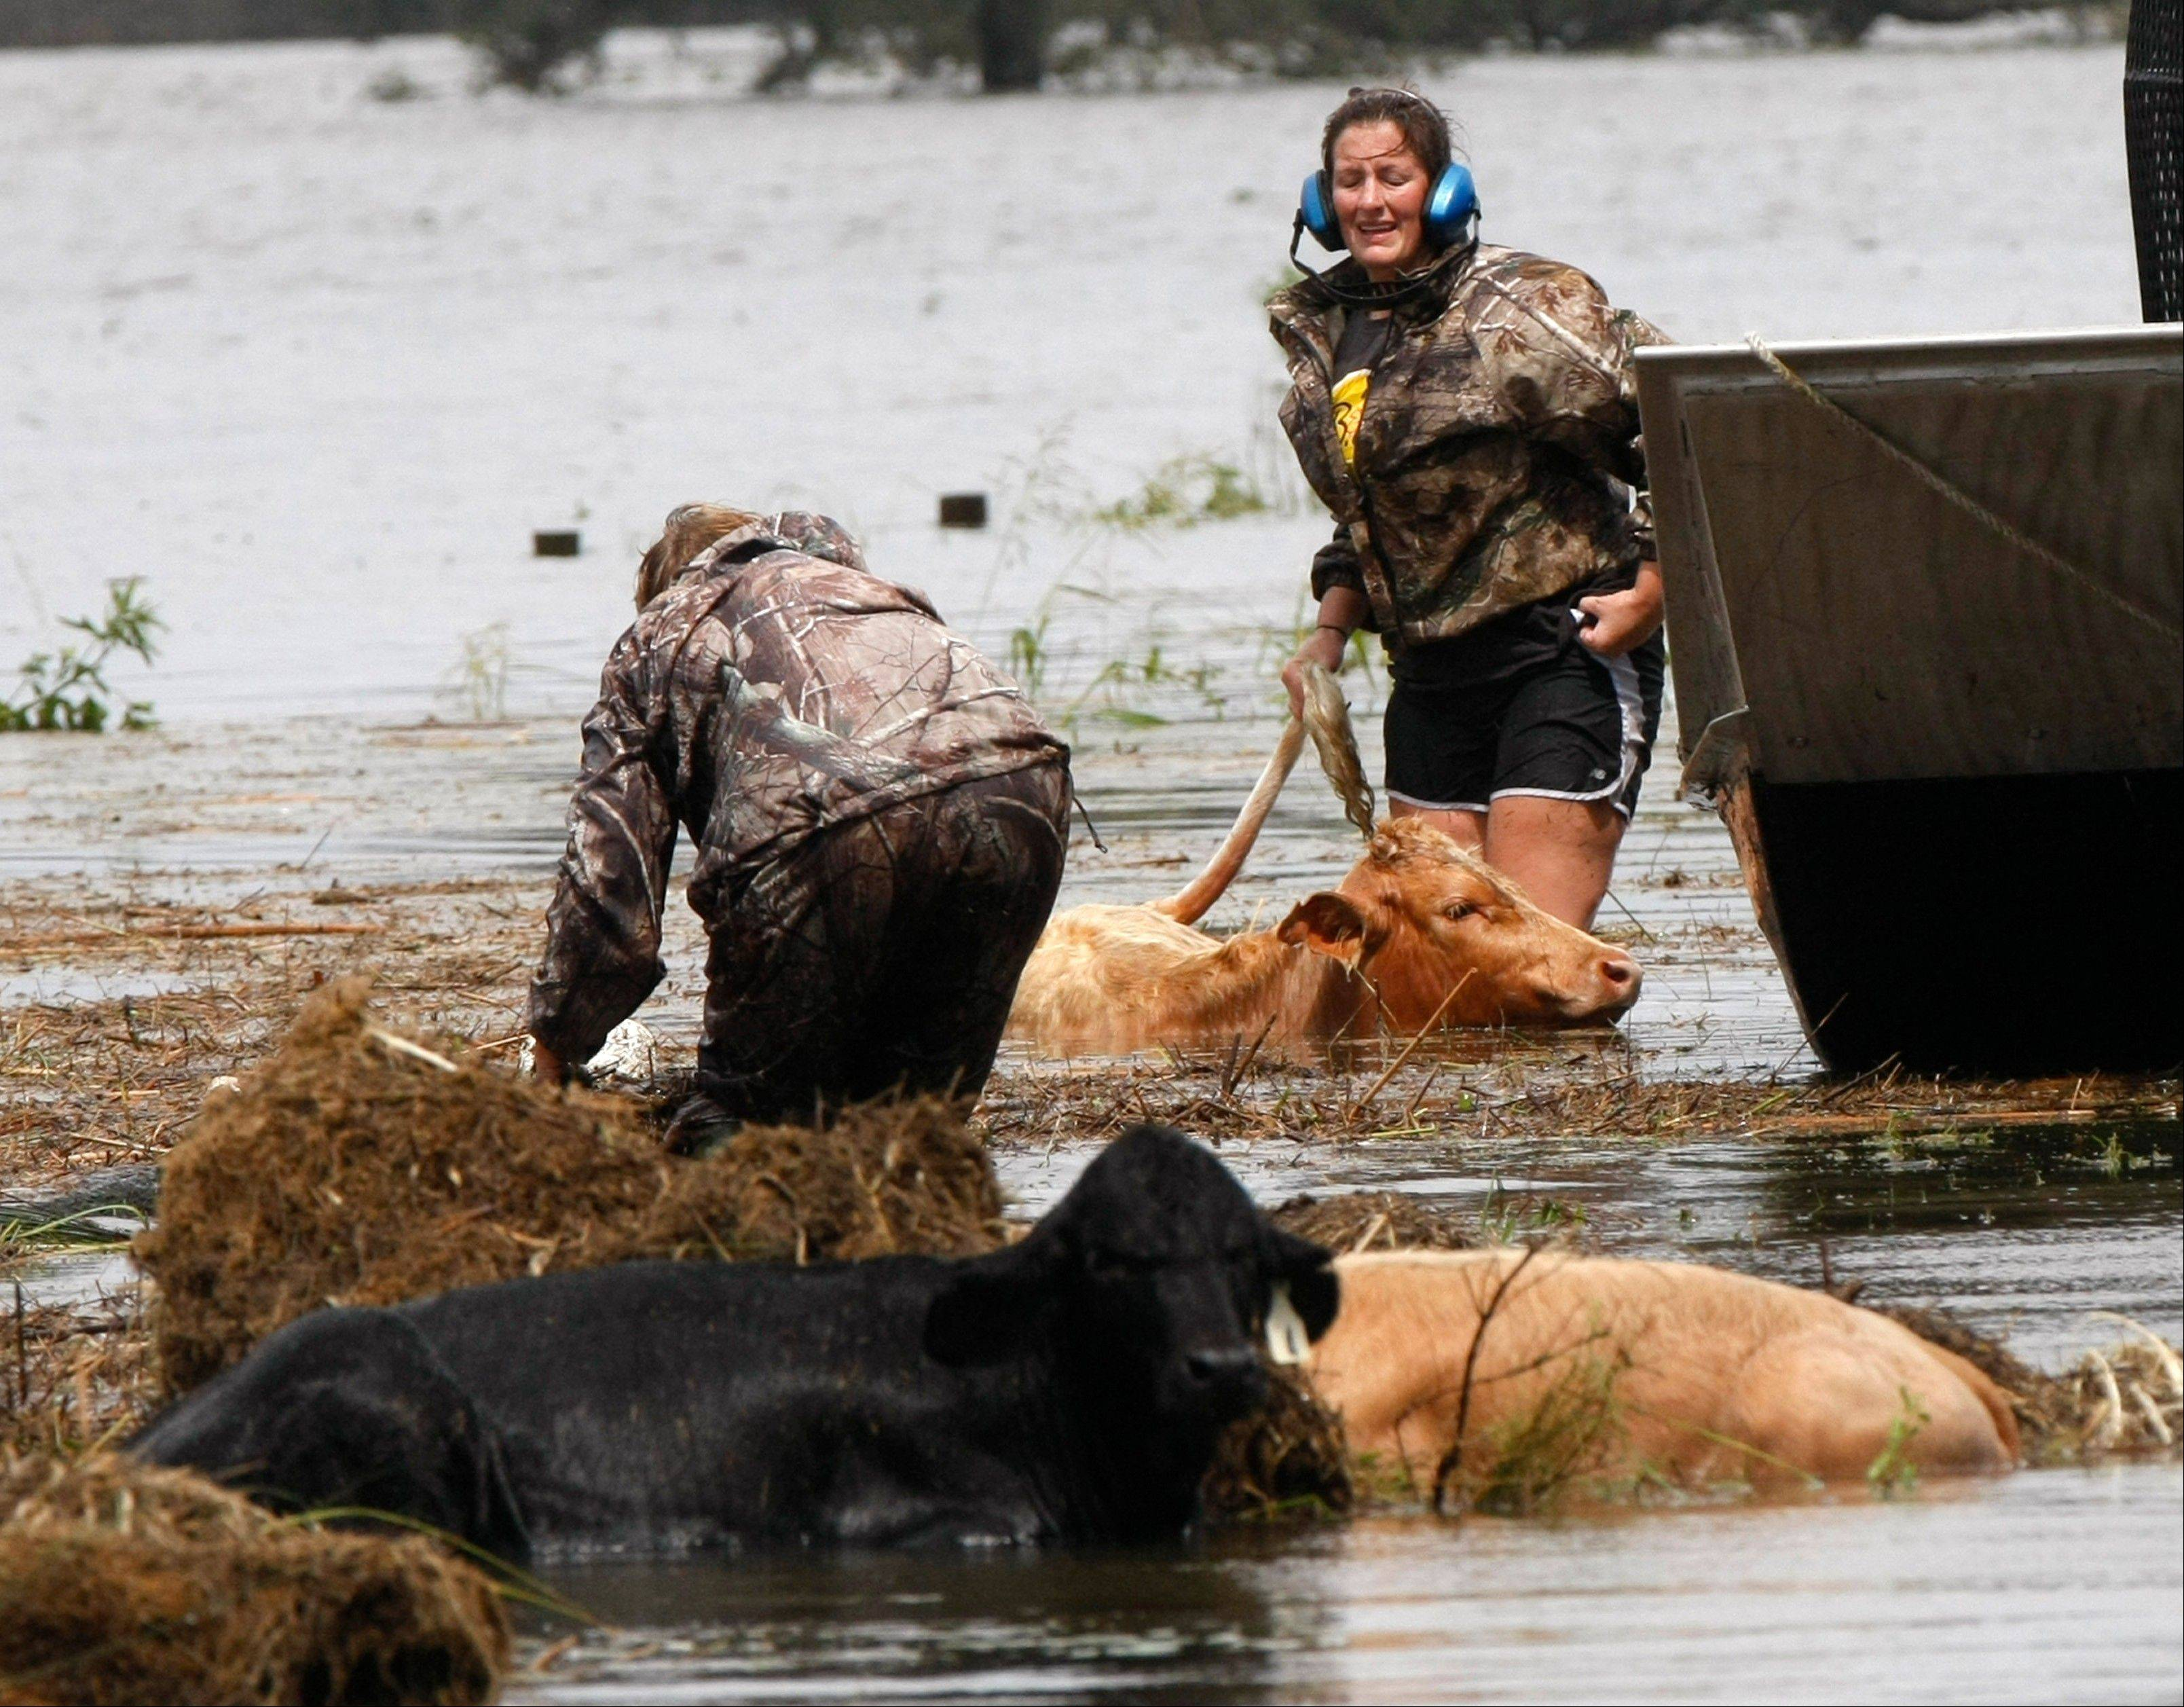 People rescue cows from floodwaters after Isaac passed through the region, in Plaquemines Parish, La., Thursday, Aug. 30, 2012.